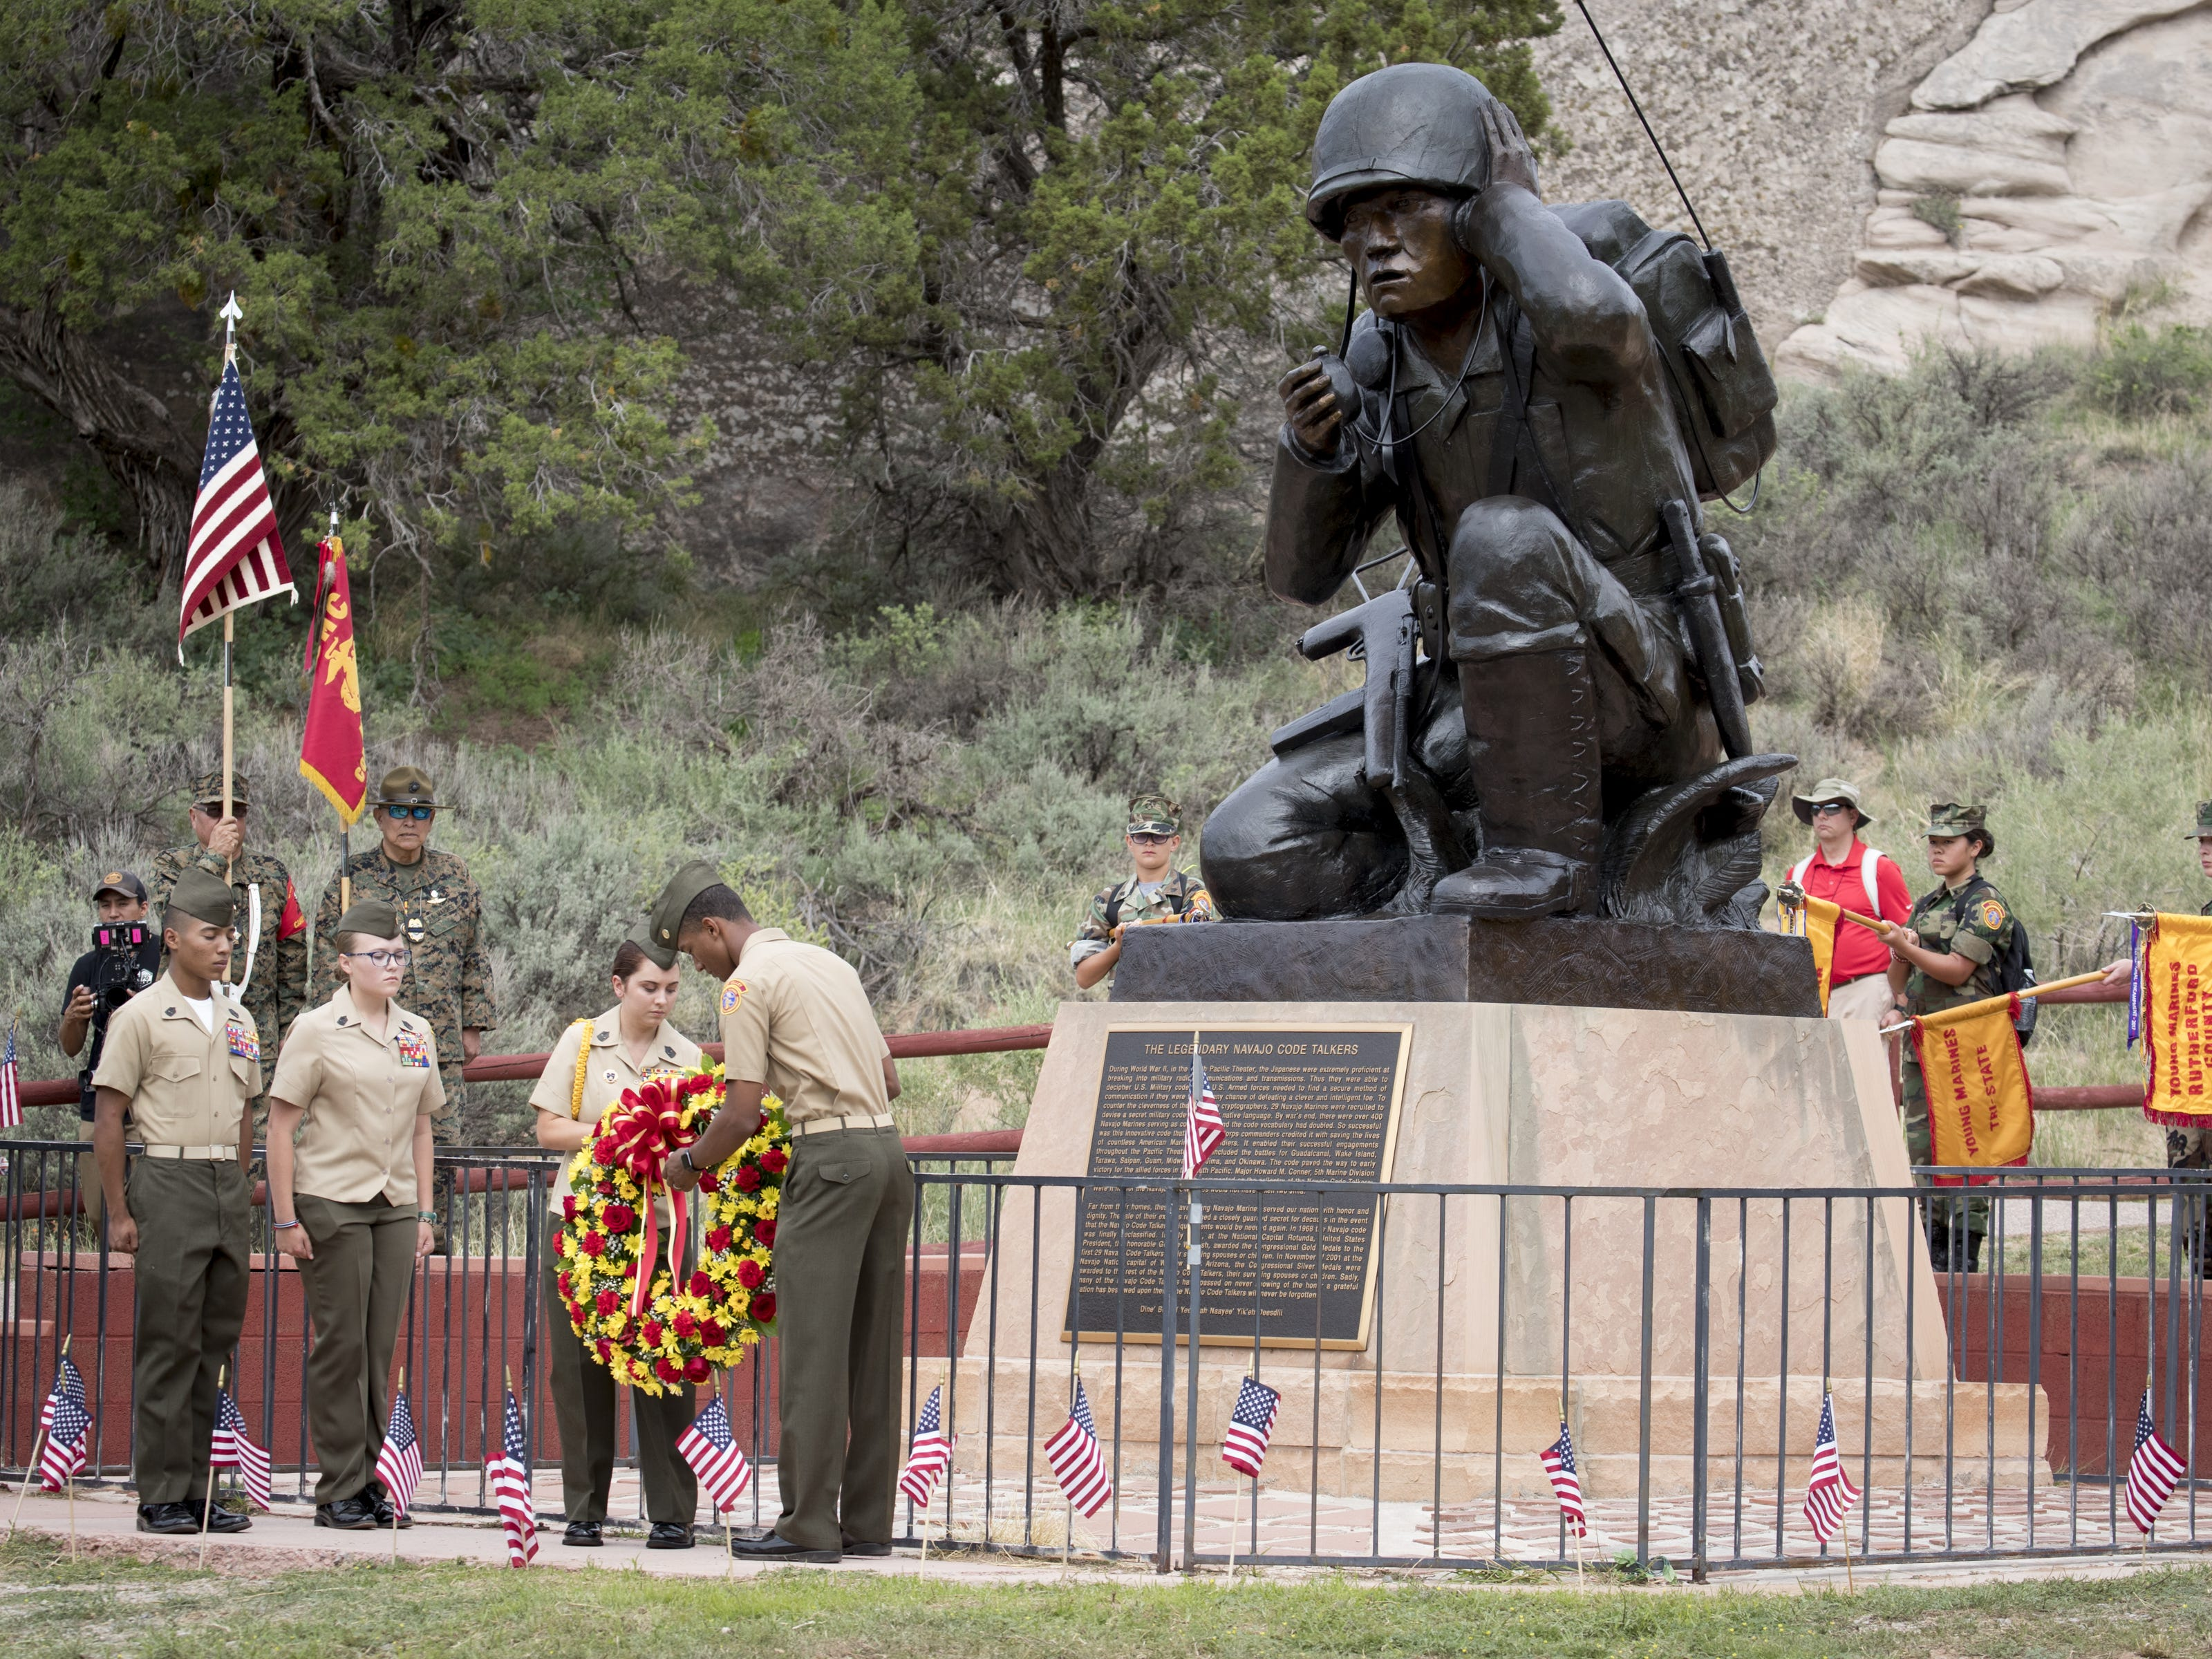 The Navajo Nation Code Talkers Day wreath ceremony on Aug. 14, 2018, at the Veterans Memorial Park in Window Rock.